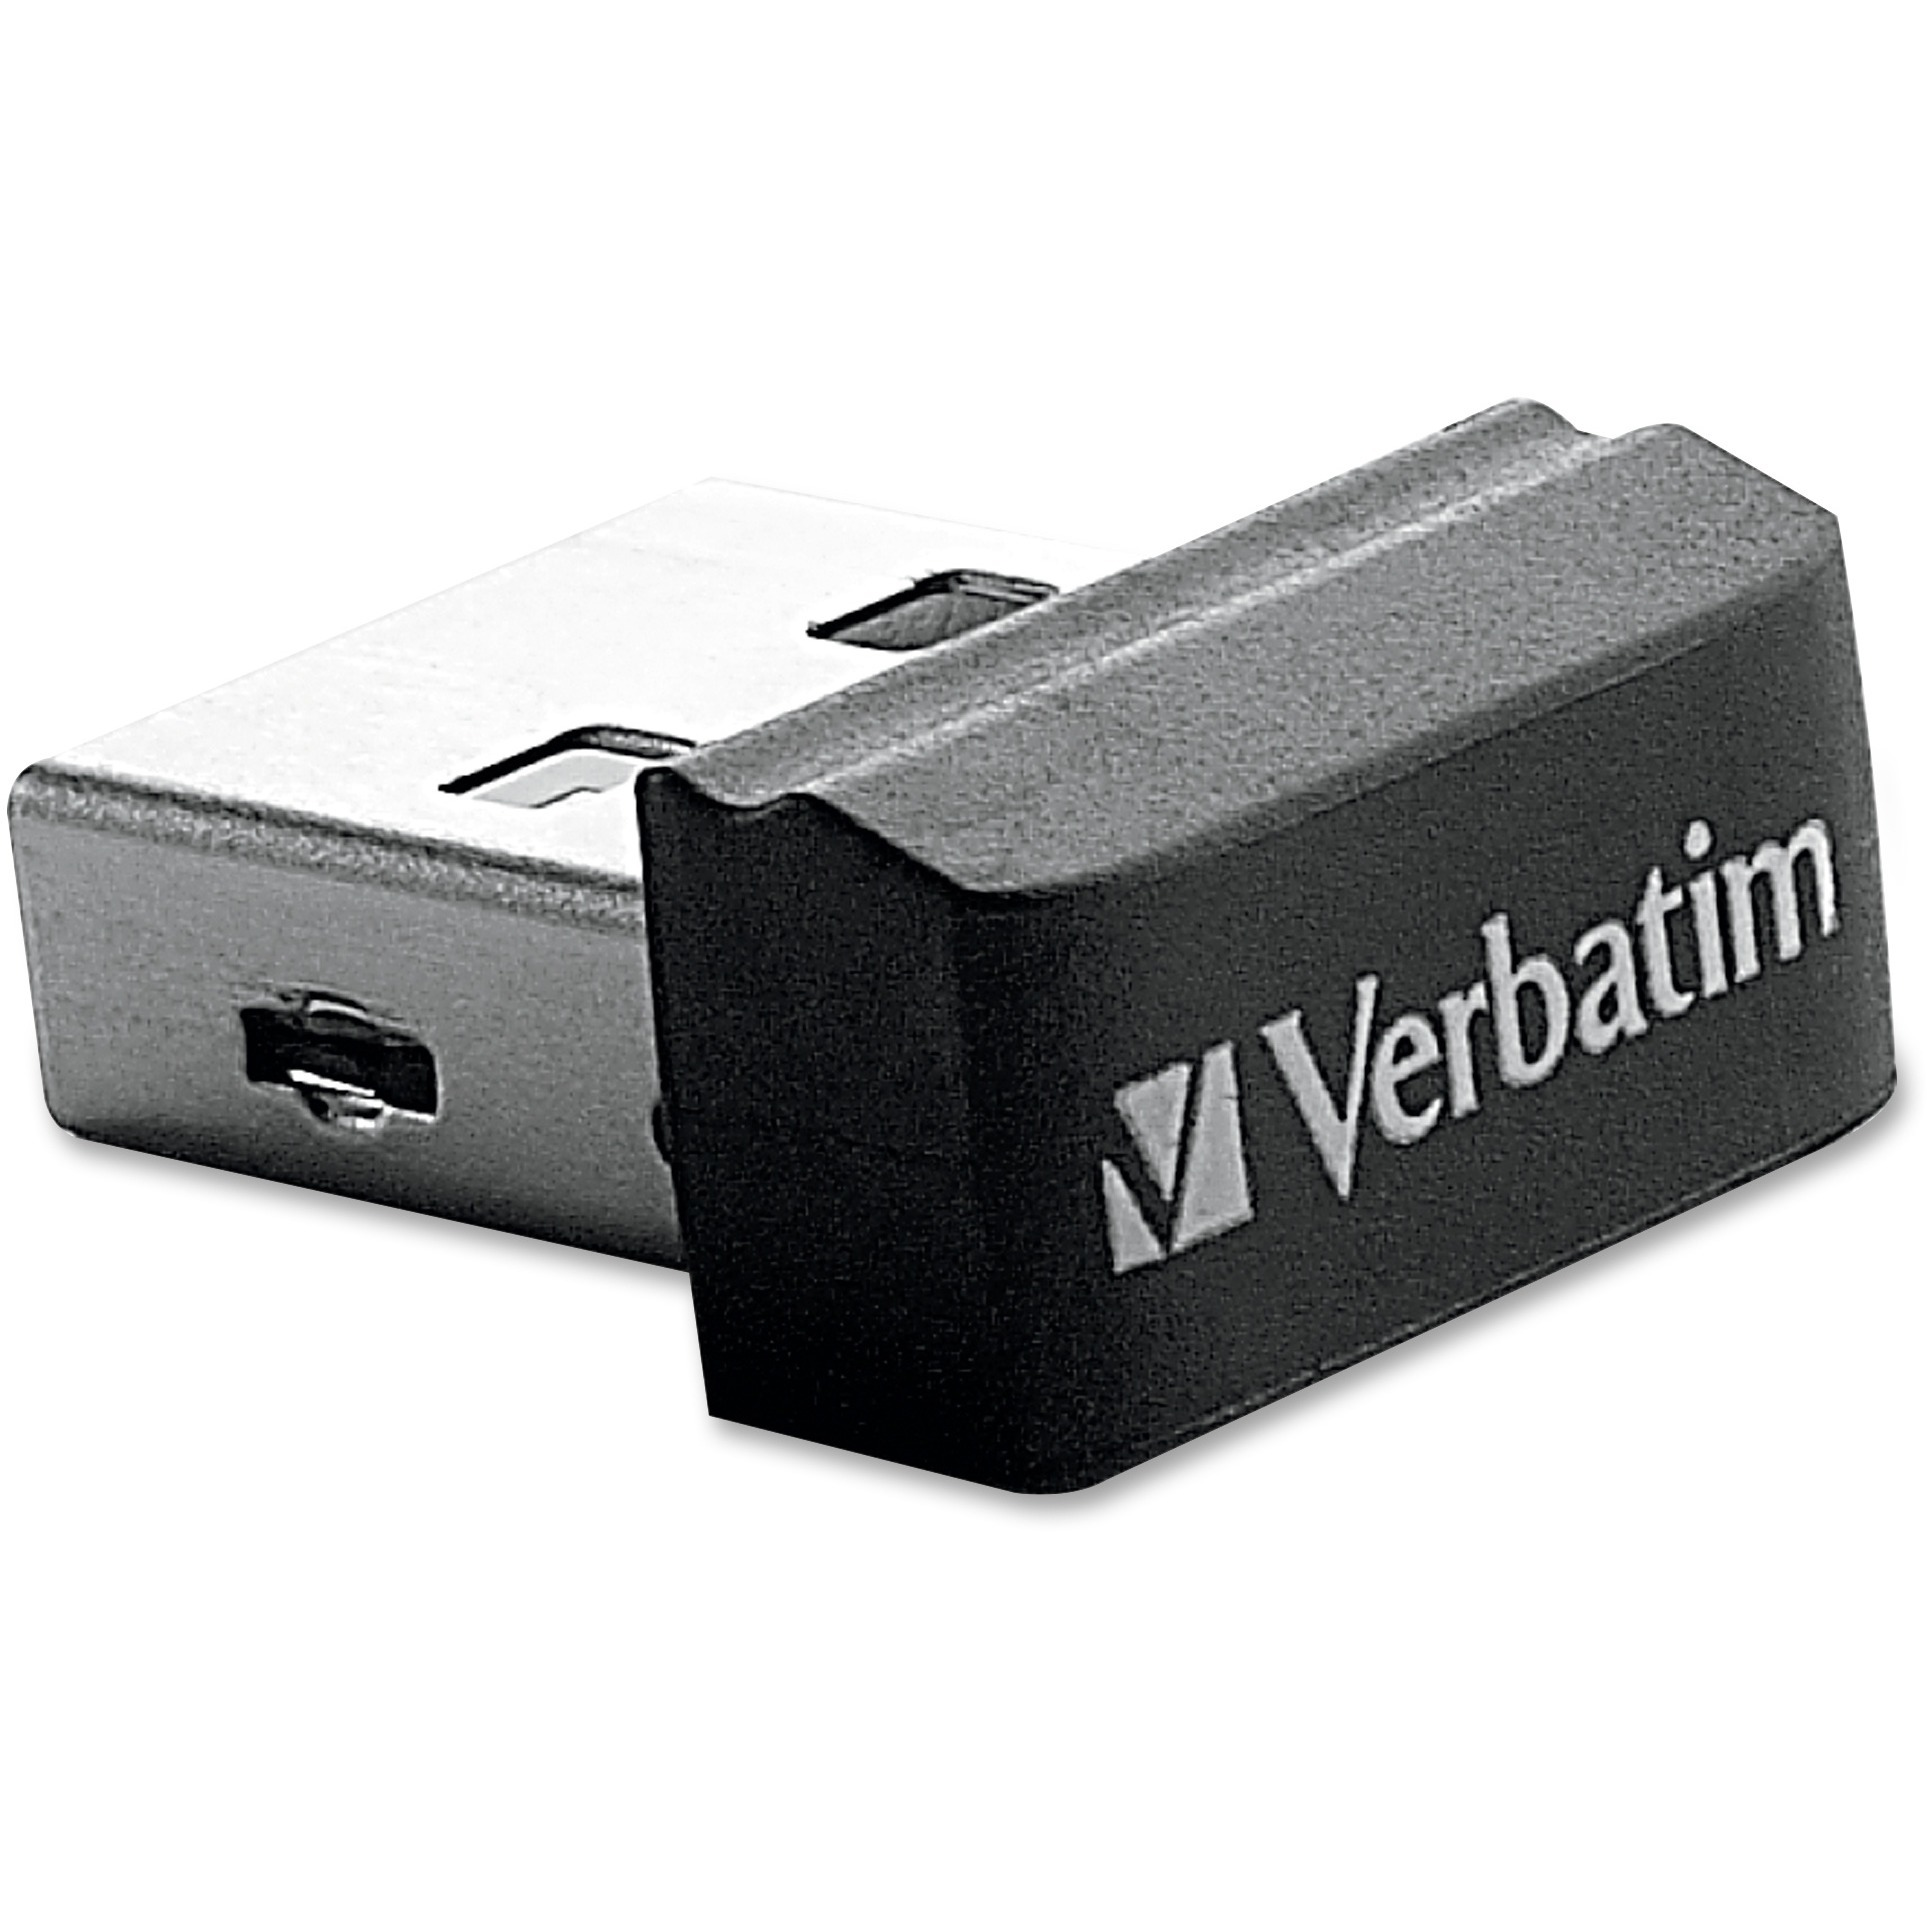 Verbatim, VER97464, Store 'n' Stay NANO USB Drive 16GB, 1 / Each, Black